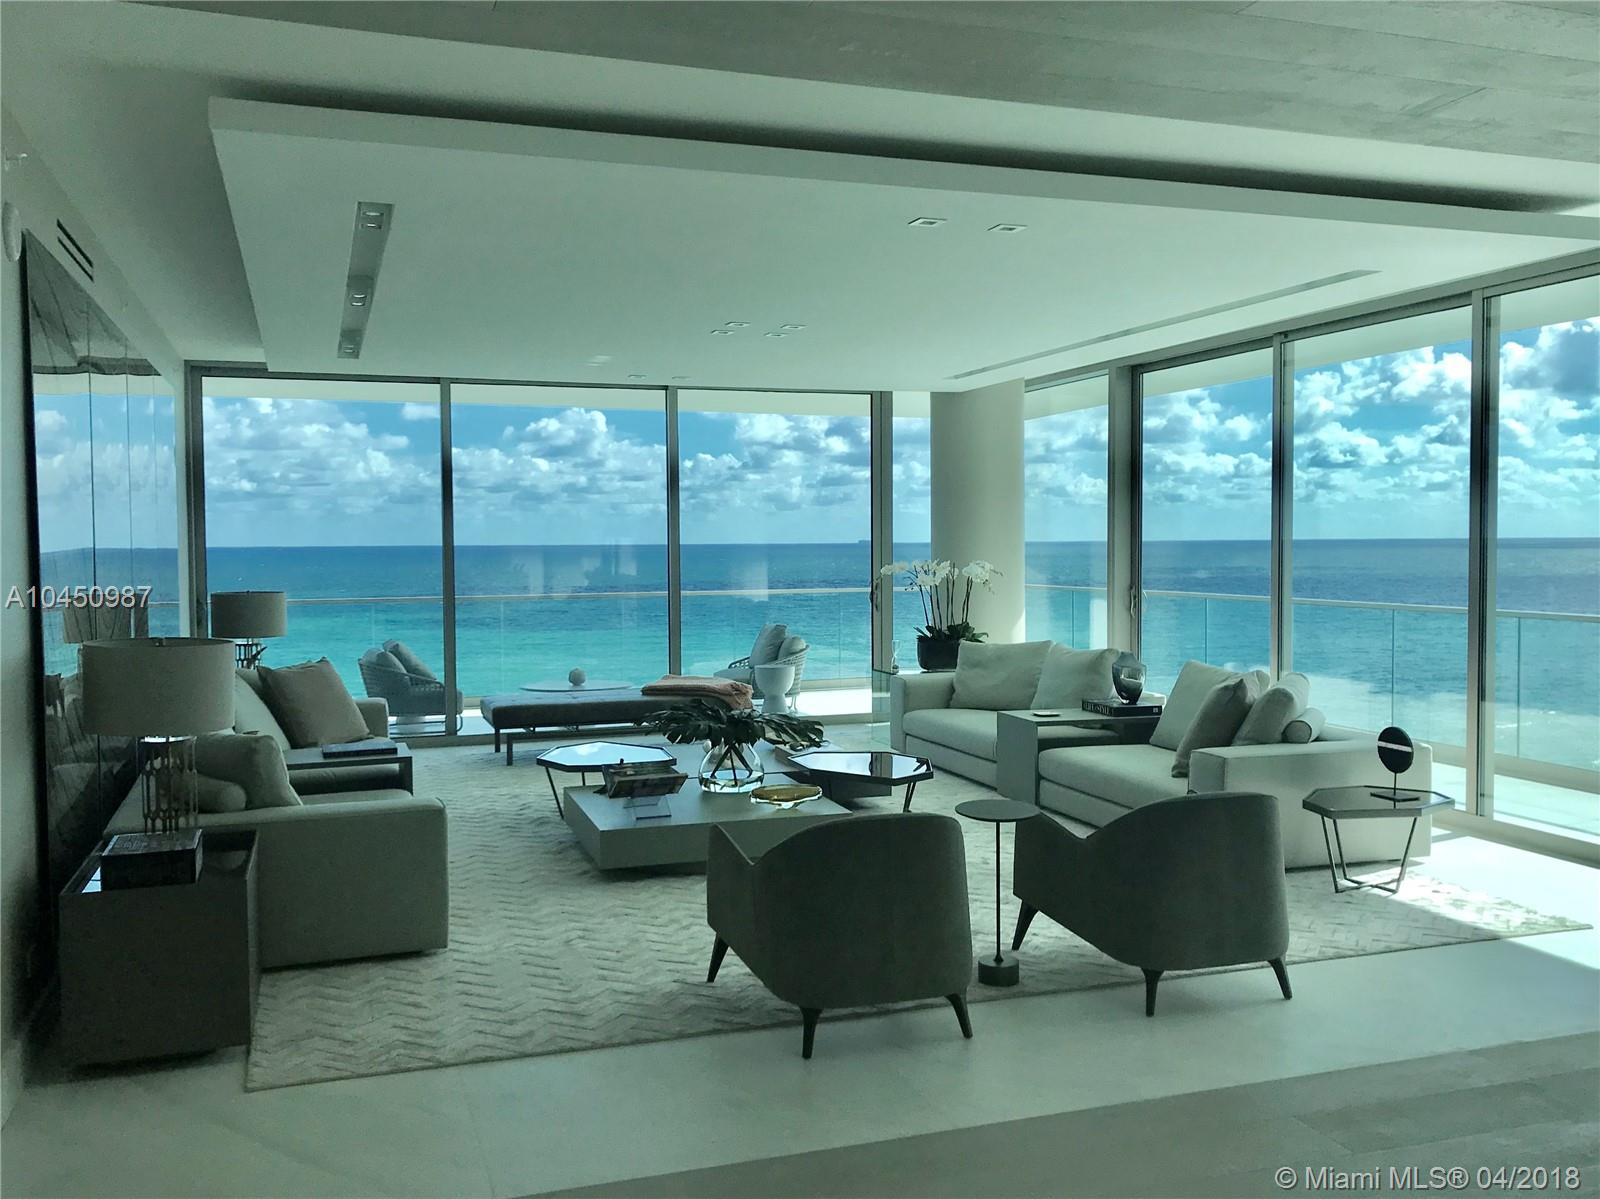 AMAZING MODEL UNIT completely turn key @ OCEANA BAL HARBOUR: Worth to see and show! The most beautiful in Oceana. Big corner unit and flow-through units with unobstructed views to Ocean and Bay. Amazing wrap around terrace of about 1,600 SF on top to the 4,185 SF under AC. Fully finished and furnished as model unit for Oceana. 3 bedrooms, 4 baths, family Den and much more. Marble and wood floors, Dada Kitchens with Golden Calacatta,  Gaggenau appliances and exquisitely finished and decorated . Turn Key unit, in the hart of Bal Harbour, the most exclusive and valued area in Miami.  A MUST SEE!!